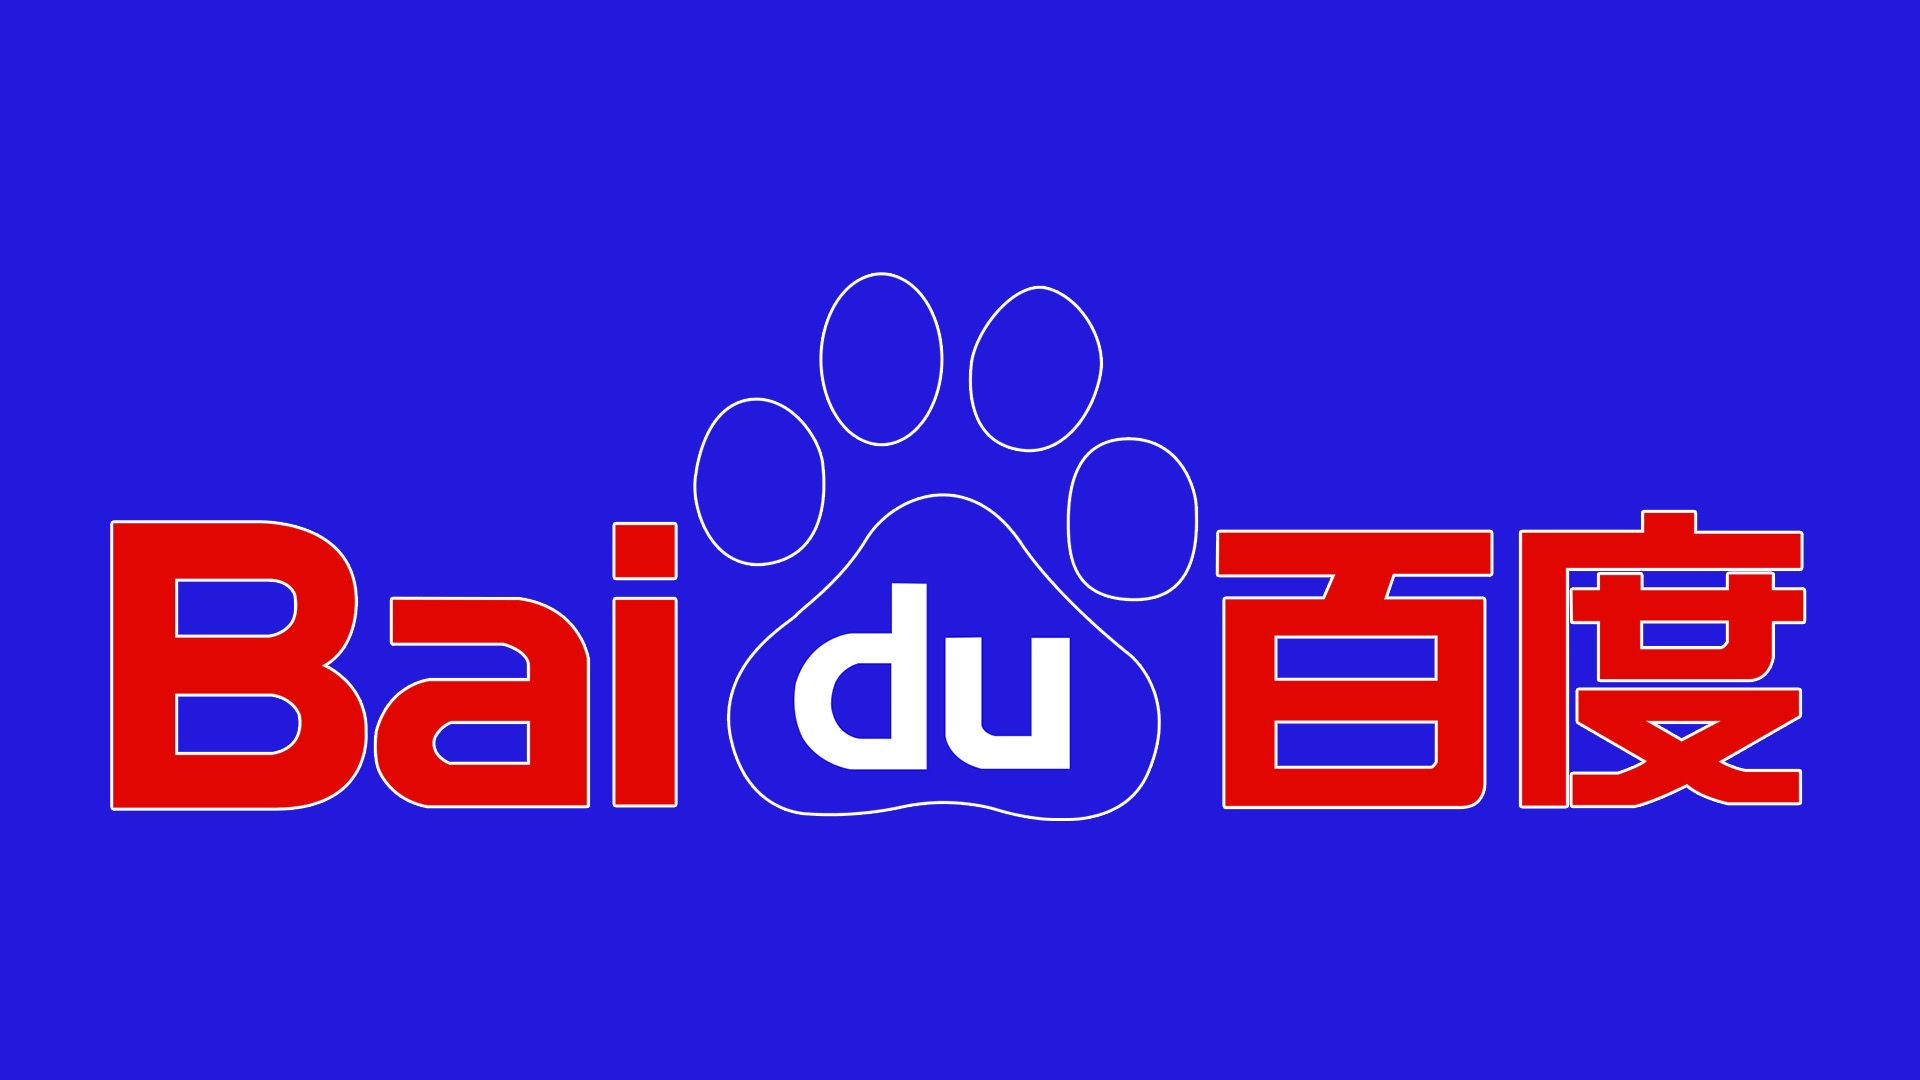 Baidu Logo - Baidu logo, symbol, meaning, History and Evolution